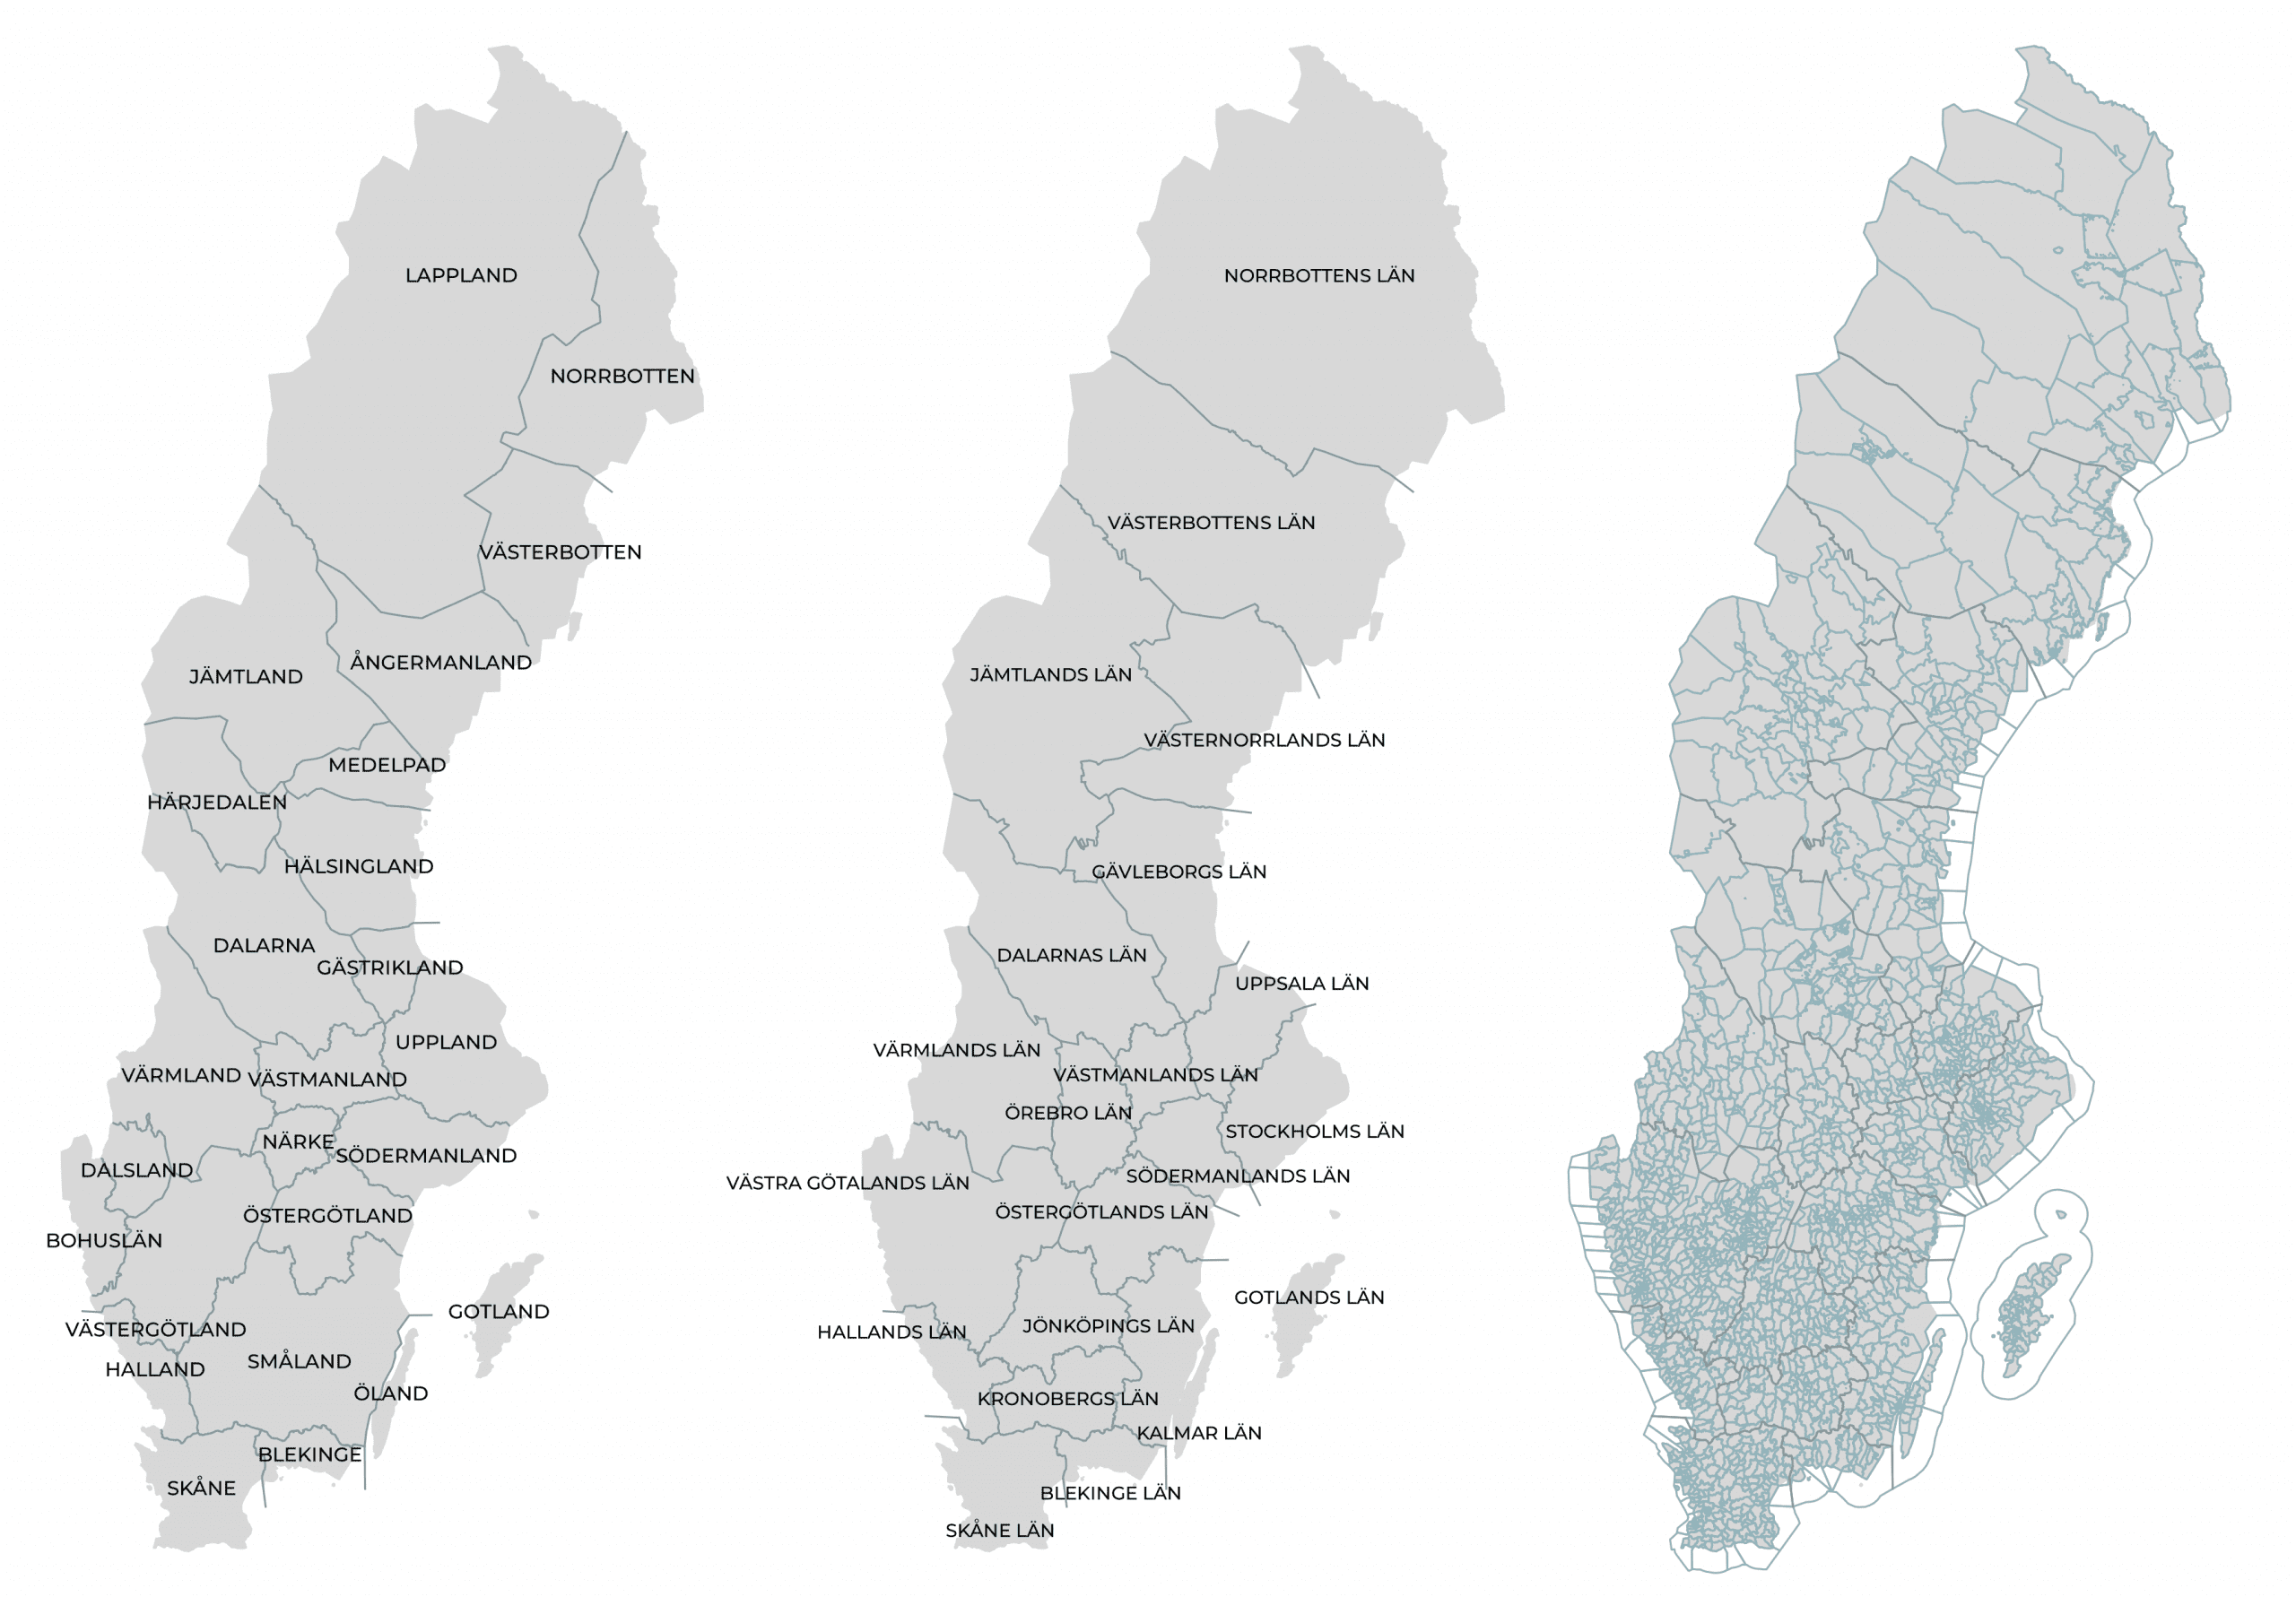 Provinces, Counties, Parishes of Sweden.